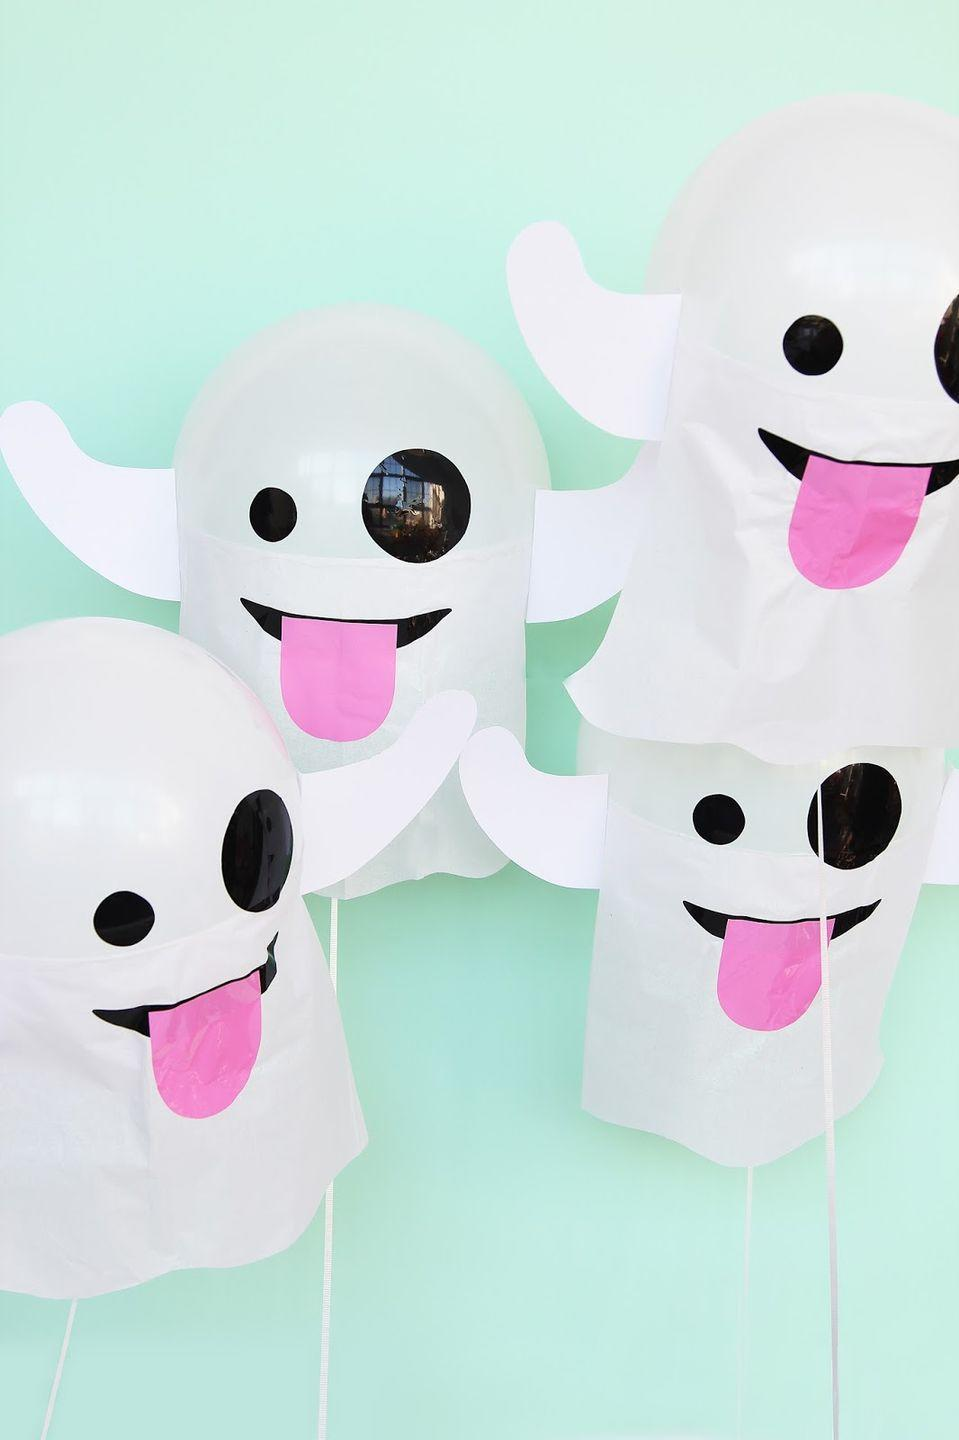 """<p>Your kids will obsess over these emoji-themed party decorations — and even more so when the sugar rush hits. </p><p><em><a href=""""http://www.awwsam.com/2015/10/diy-emoji-ghost-balloons.html"""" rel=""""nofollow noopener"""" target=""""_blank"""" data-ylk=""""slk:Get the tutorial at Aww Sam »"""" class=""""link rapid-noclick-resp"""">Get the tutorial at Aww Sam »</a></em> </p>"""